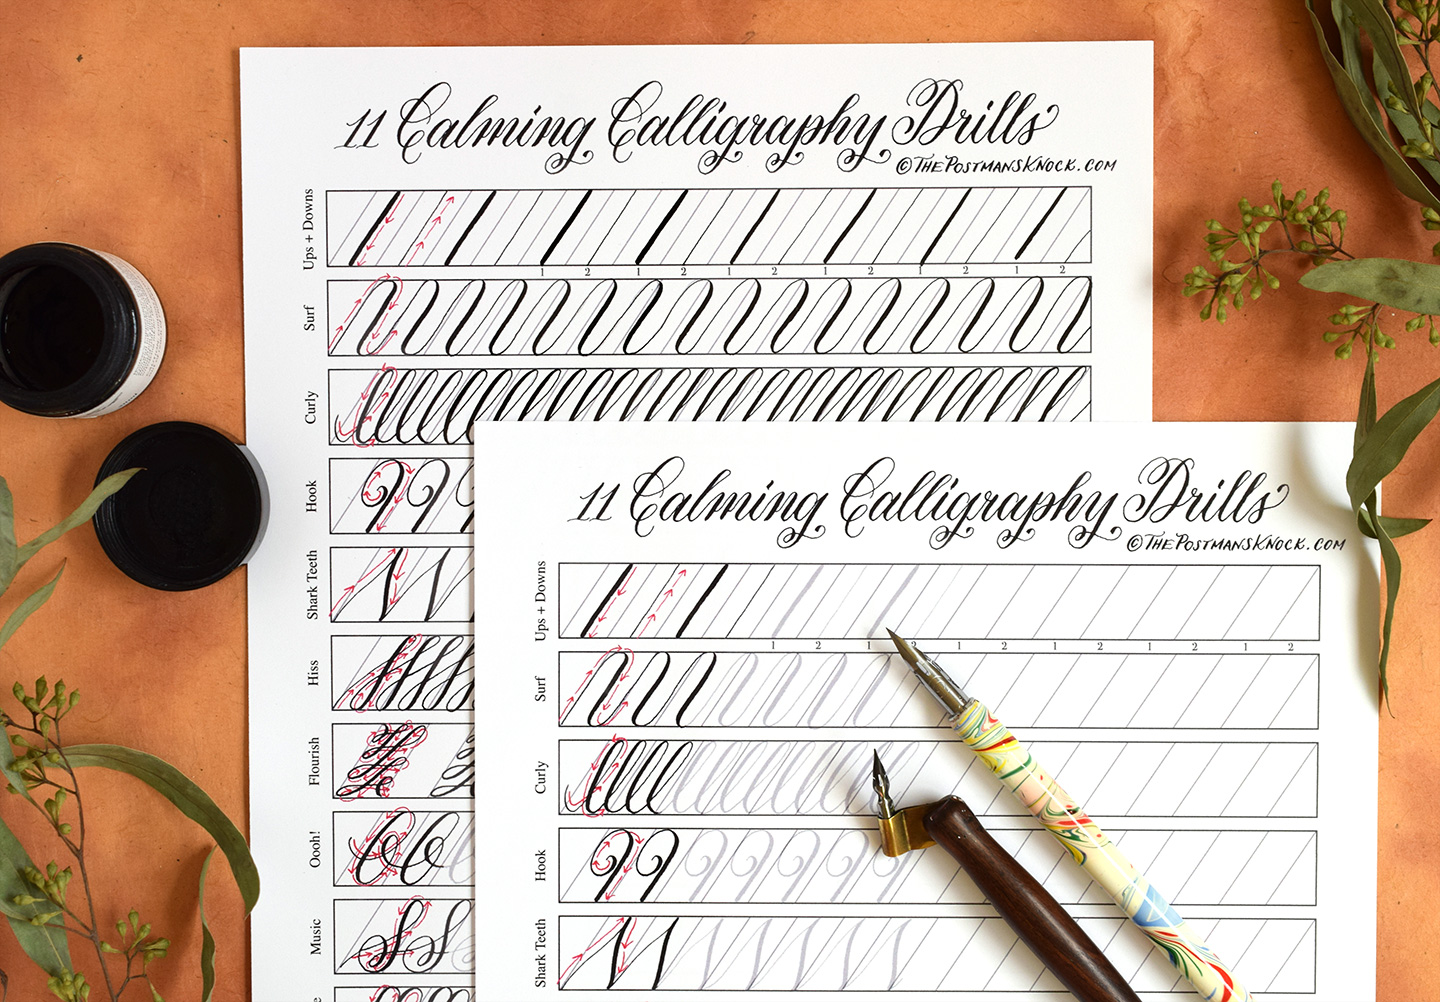 Calligraphy Books Pdf